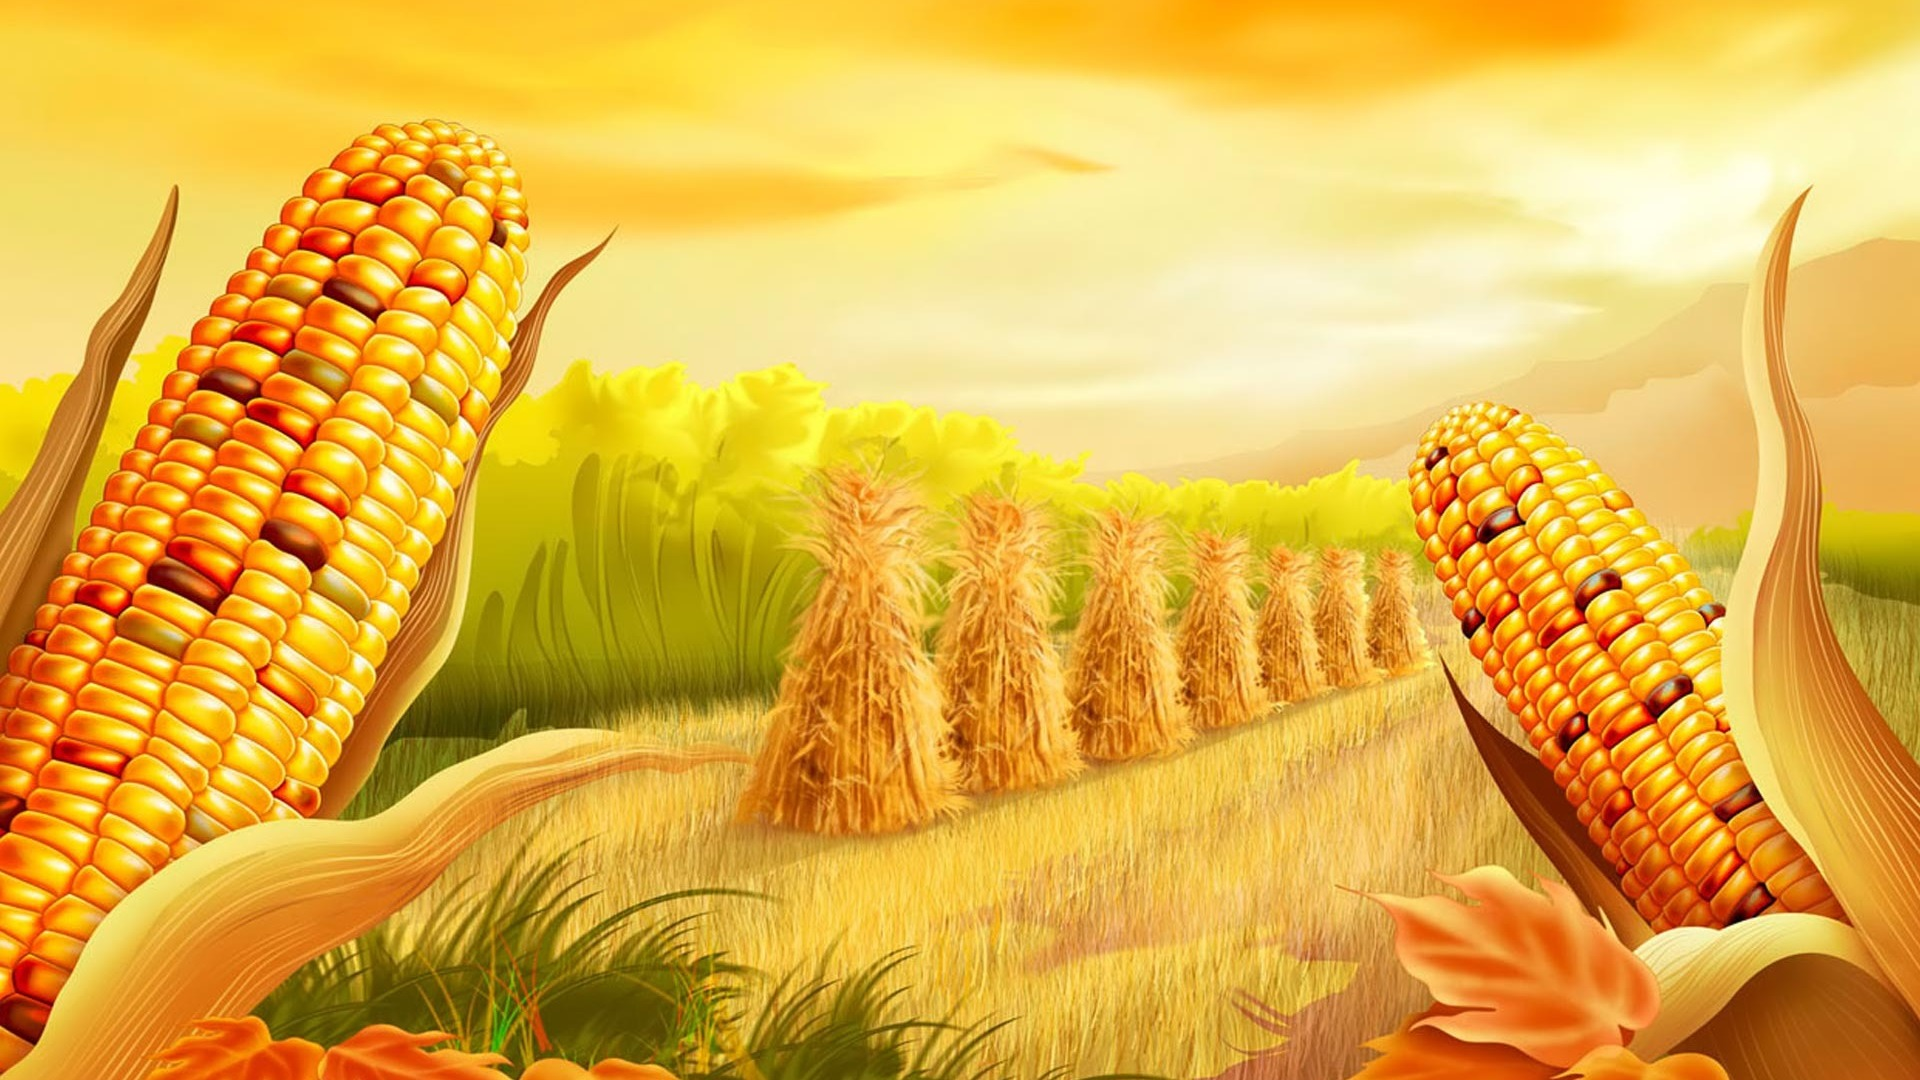 Hd Wallpaper Texture Fall Harvest Corn Ready To Harvest Golden Hd Wallpaper